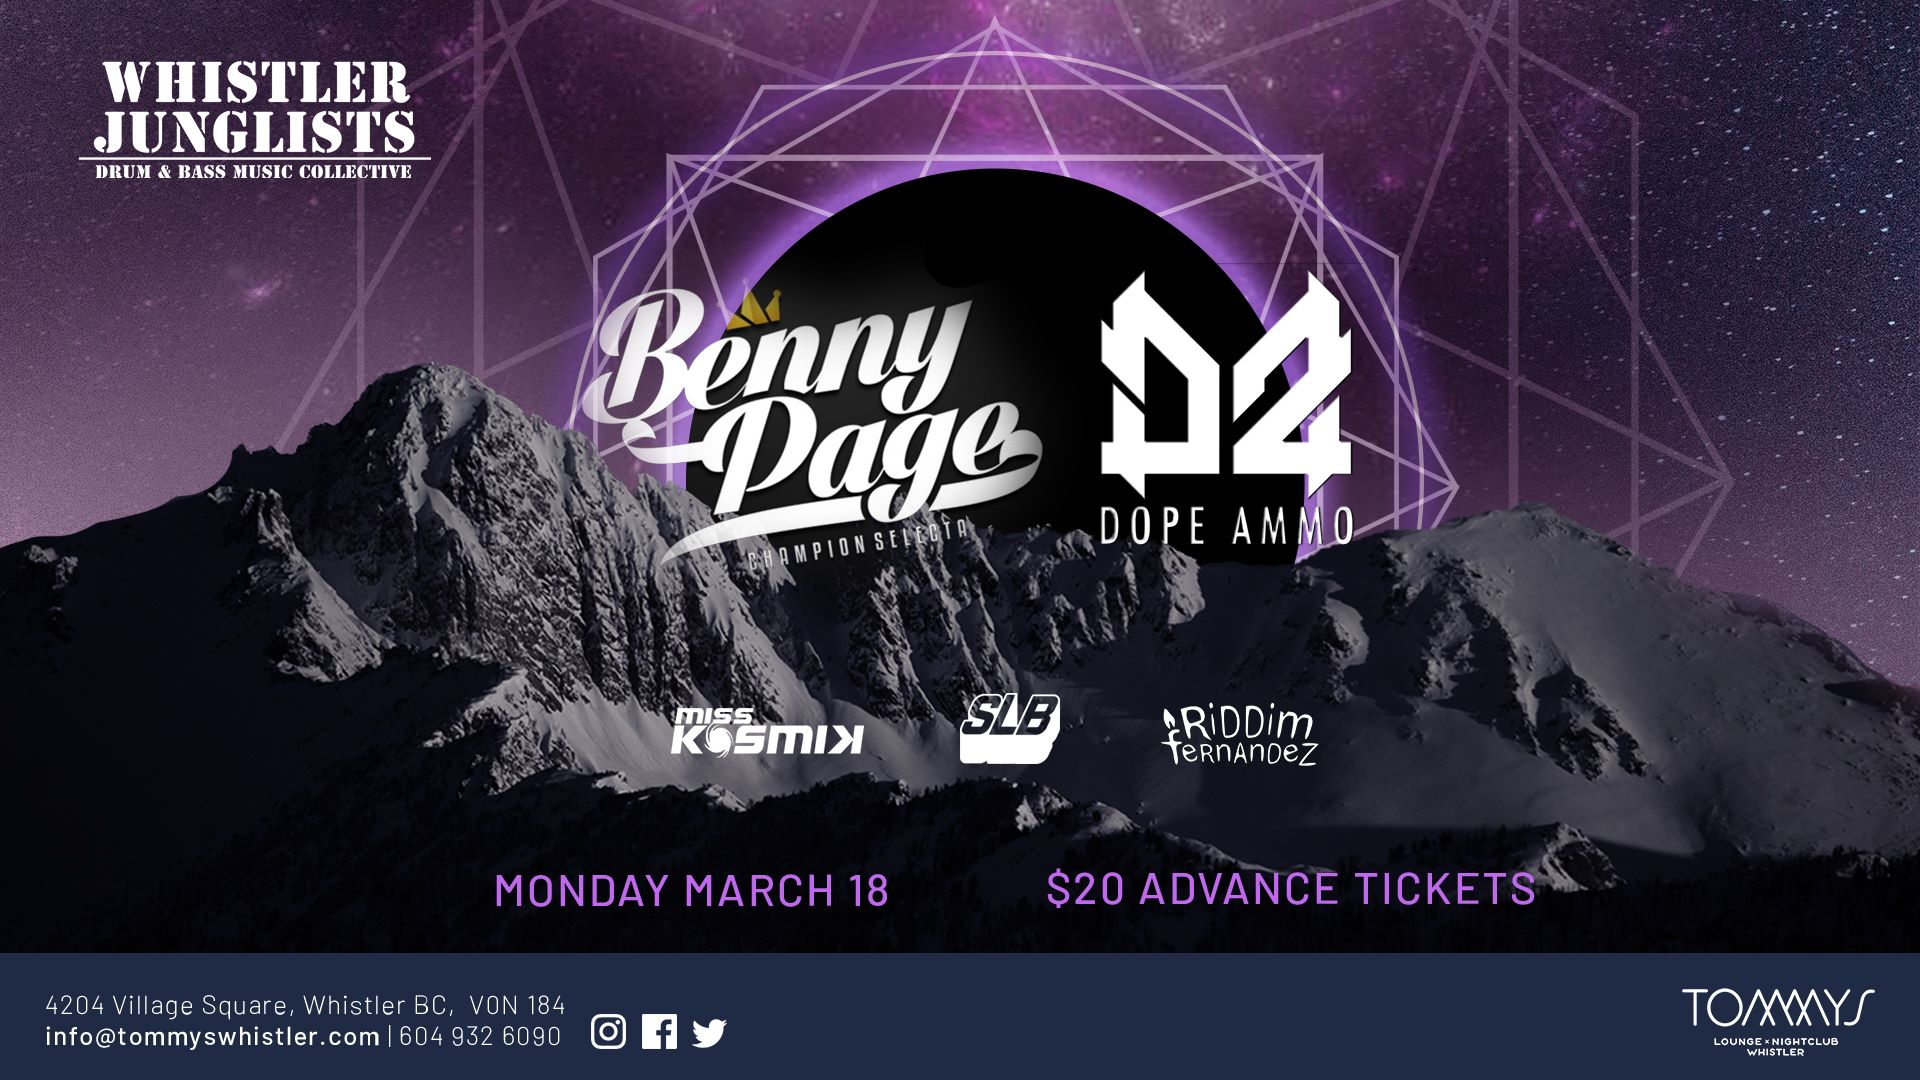 Benny Page and Dope Ammo come to Tommys Whistler